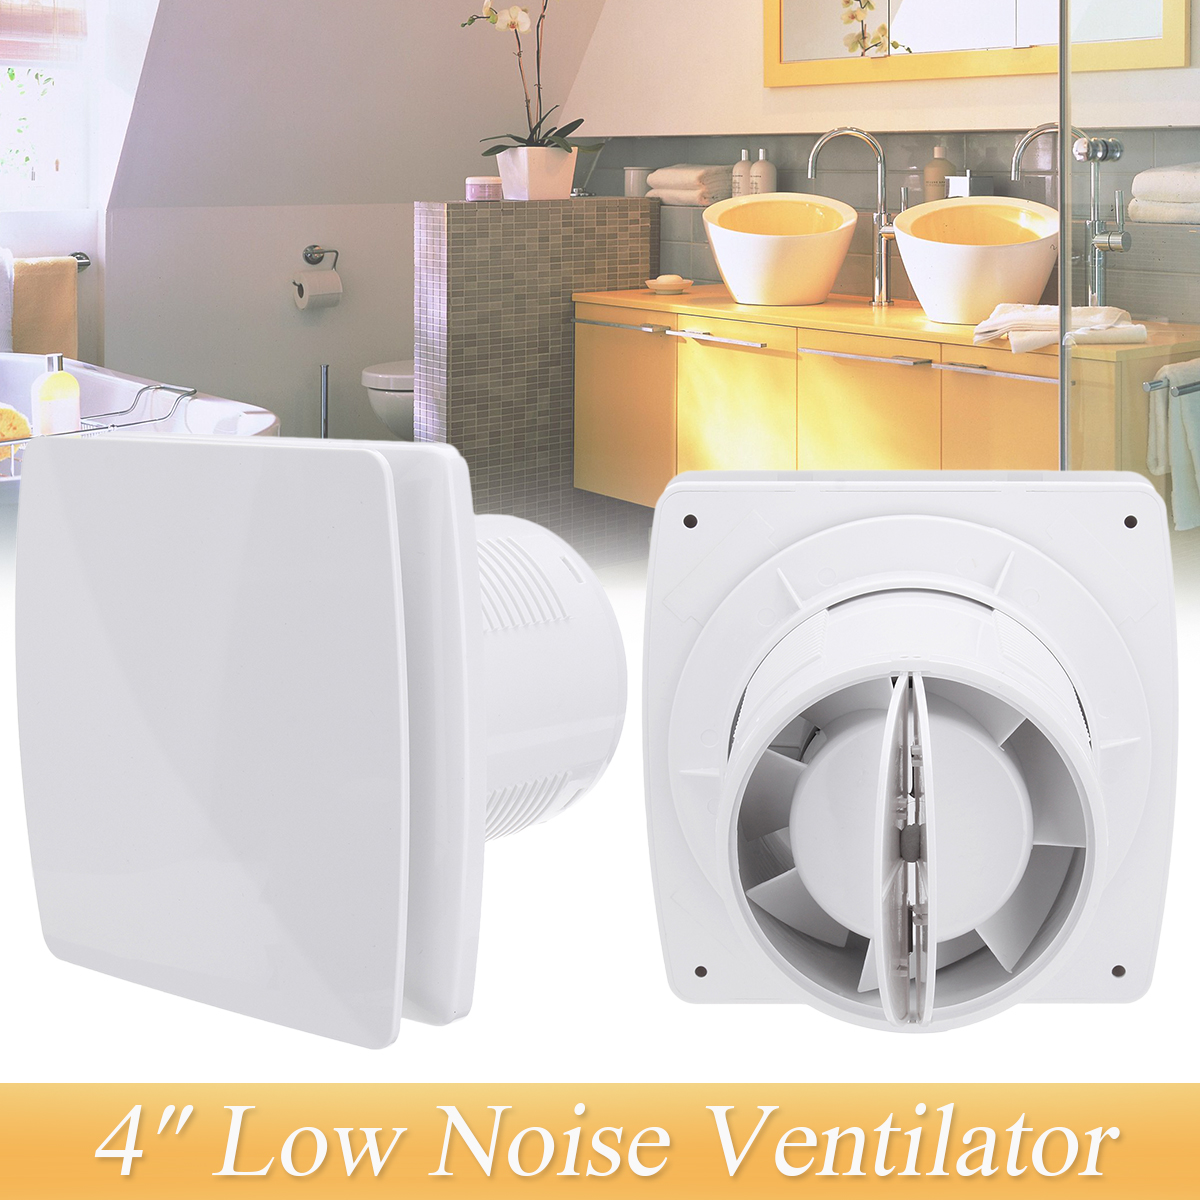 4 inch Ventilator 220V Household Low Noise Bathroom Ventilation Fan Hotel Wall Fan Silent Extractor Exhaust for Kitchen Bedroom integrated ceiling ventilator bathroom wc kitchen silent exhaust fan